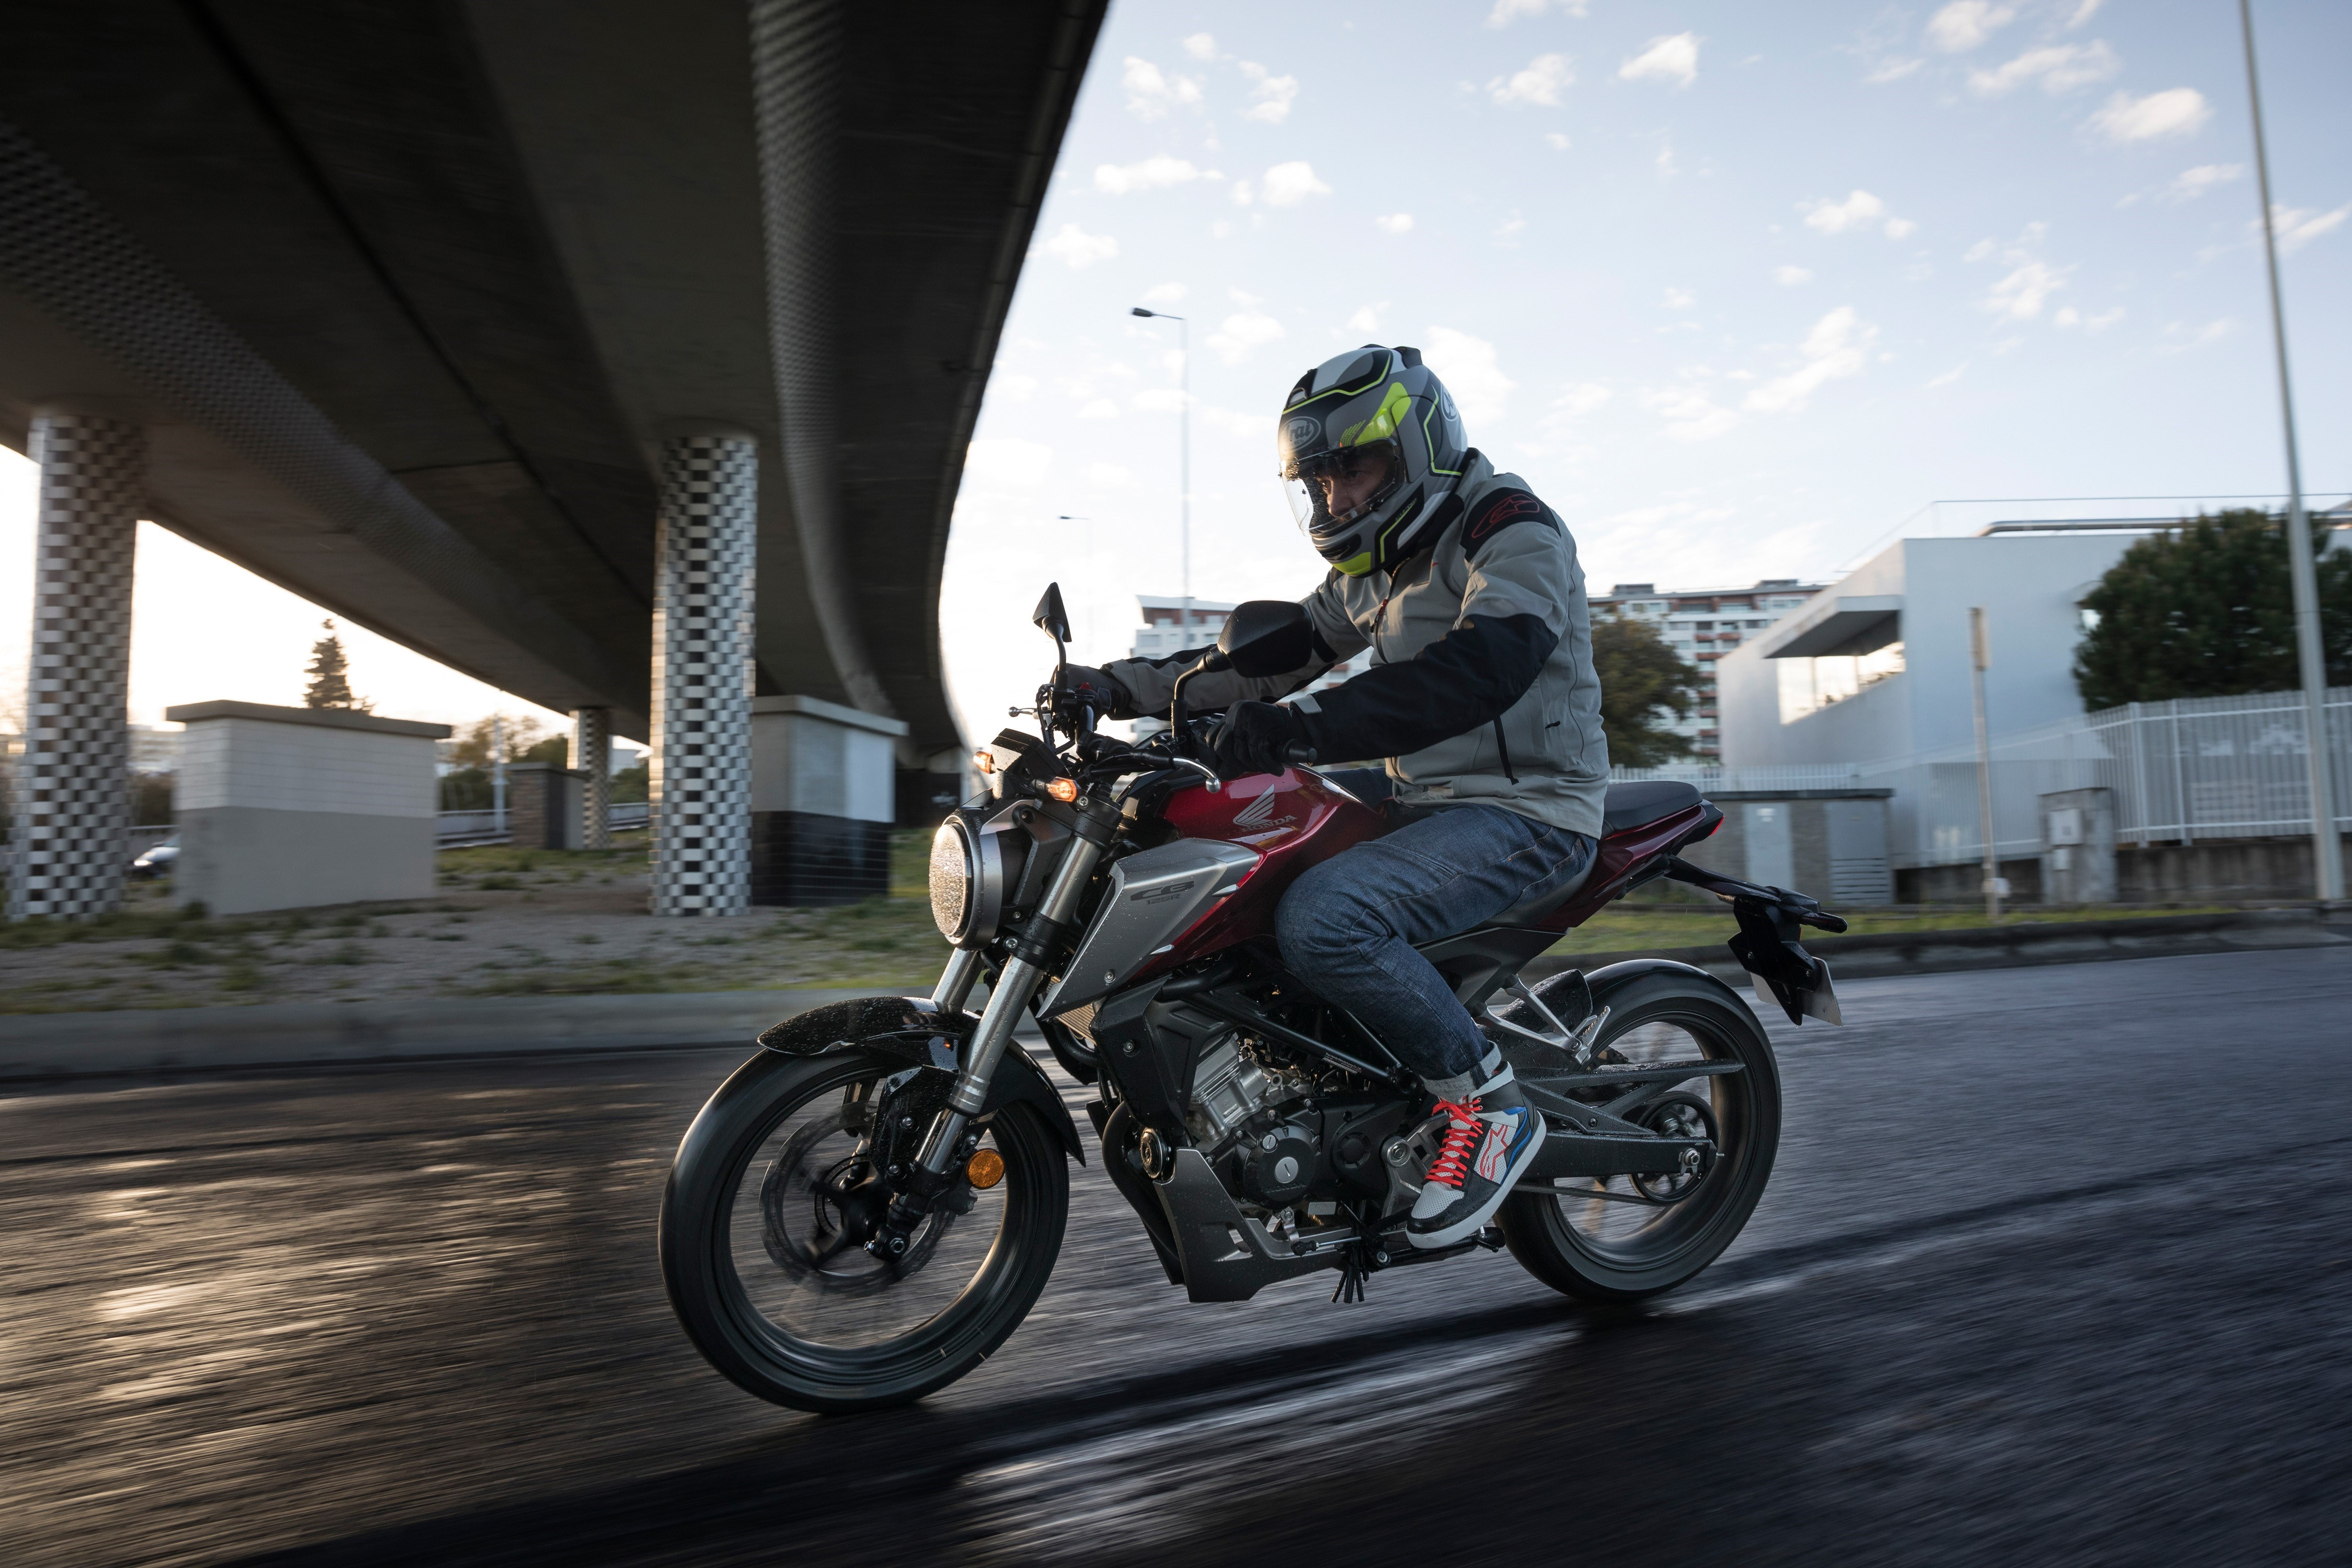 The CB125R gets the looks of much larger bikes